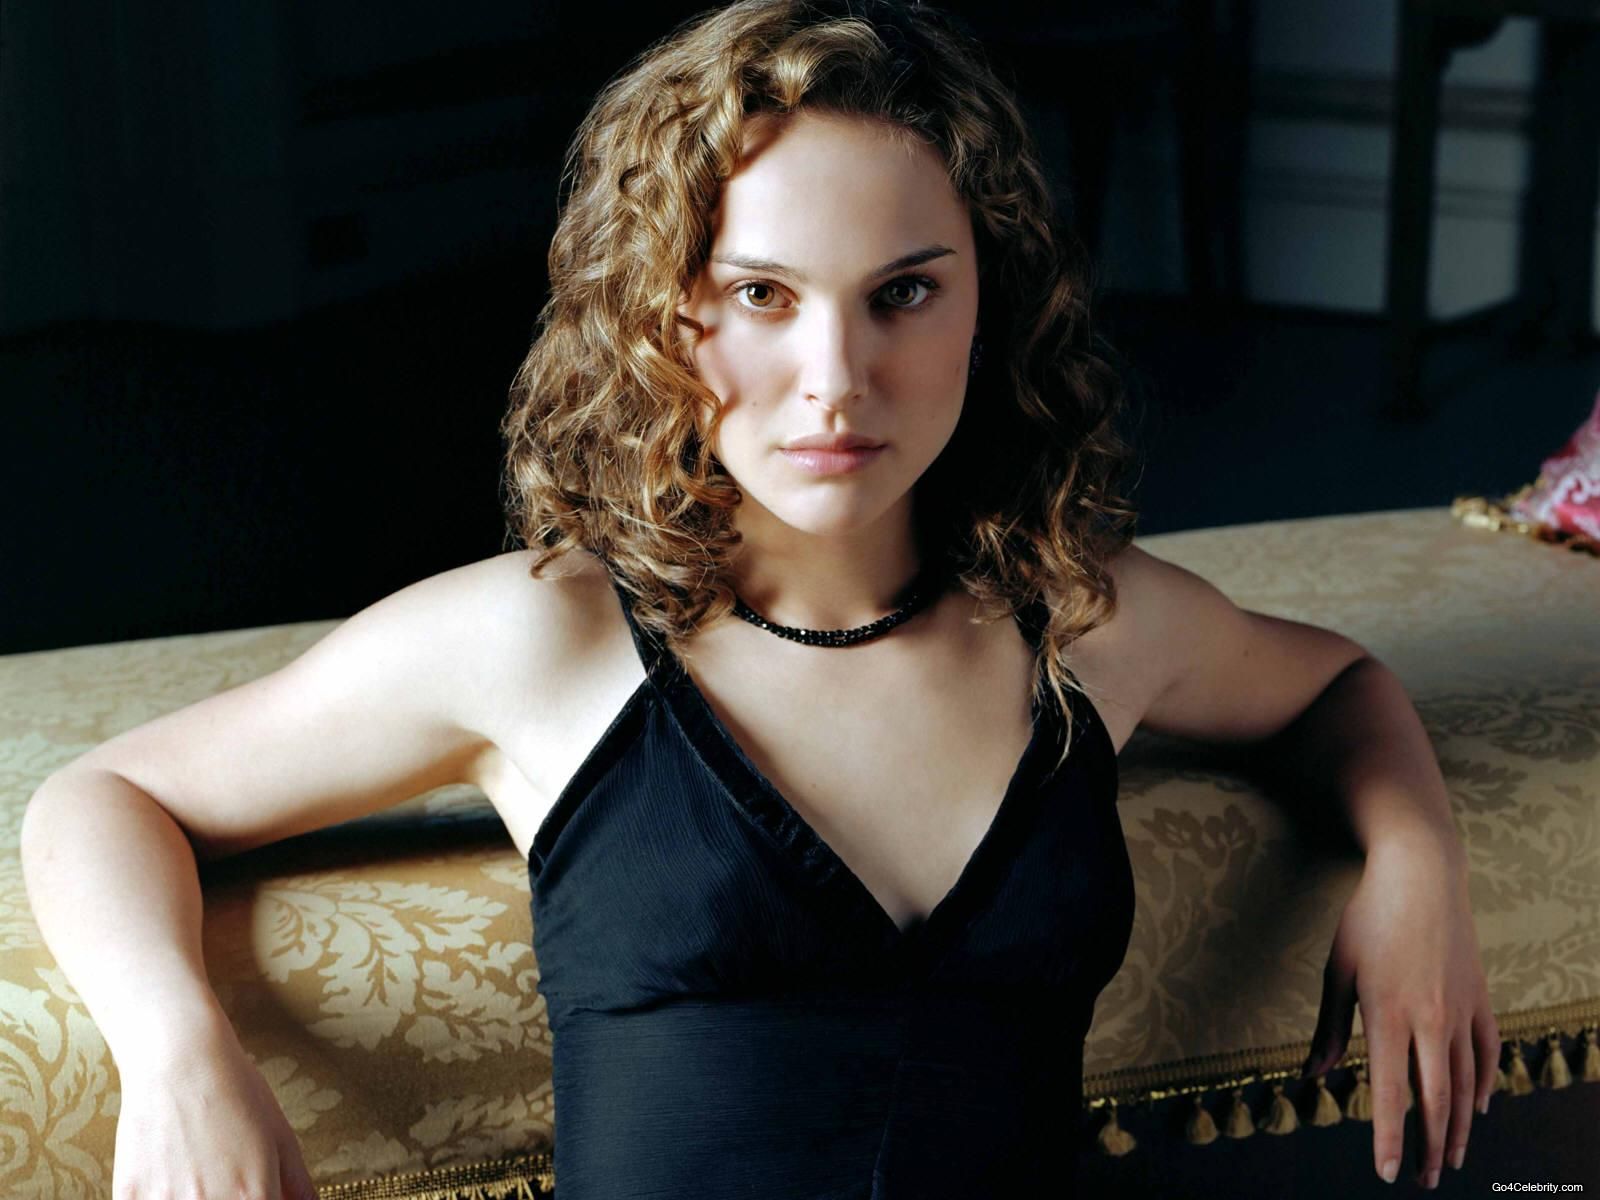 http://2.bp.blogspot.com/-rwAzcnIstGU/T5z5QqGLISI/AAAAAAAAJk0/IRdBqZ_8qXE/s1600/Natalie+Portman+Hot+Photo+Collection+%283%29.jpg